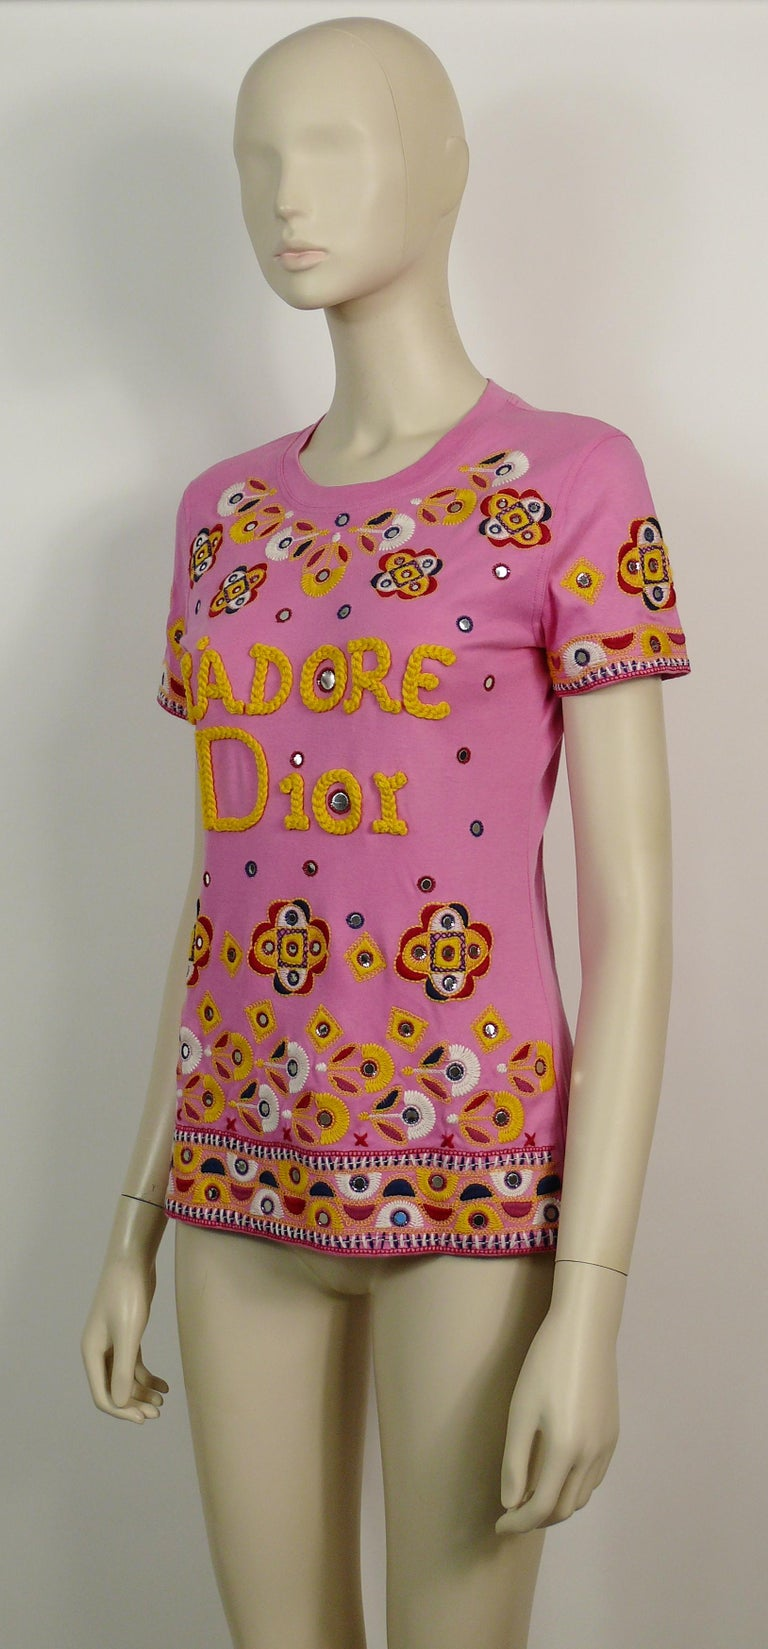 Christian Dior J'adore Dior Embroidered T-Shirt US Size 6 For Sale 1